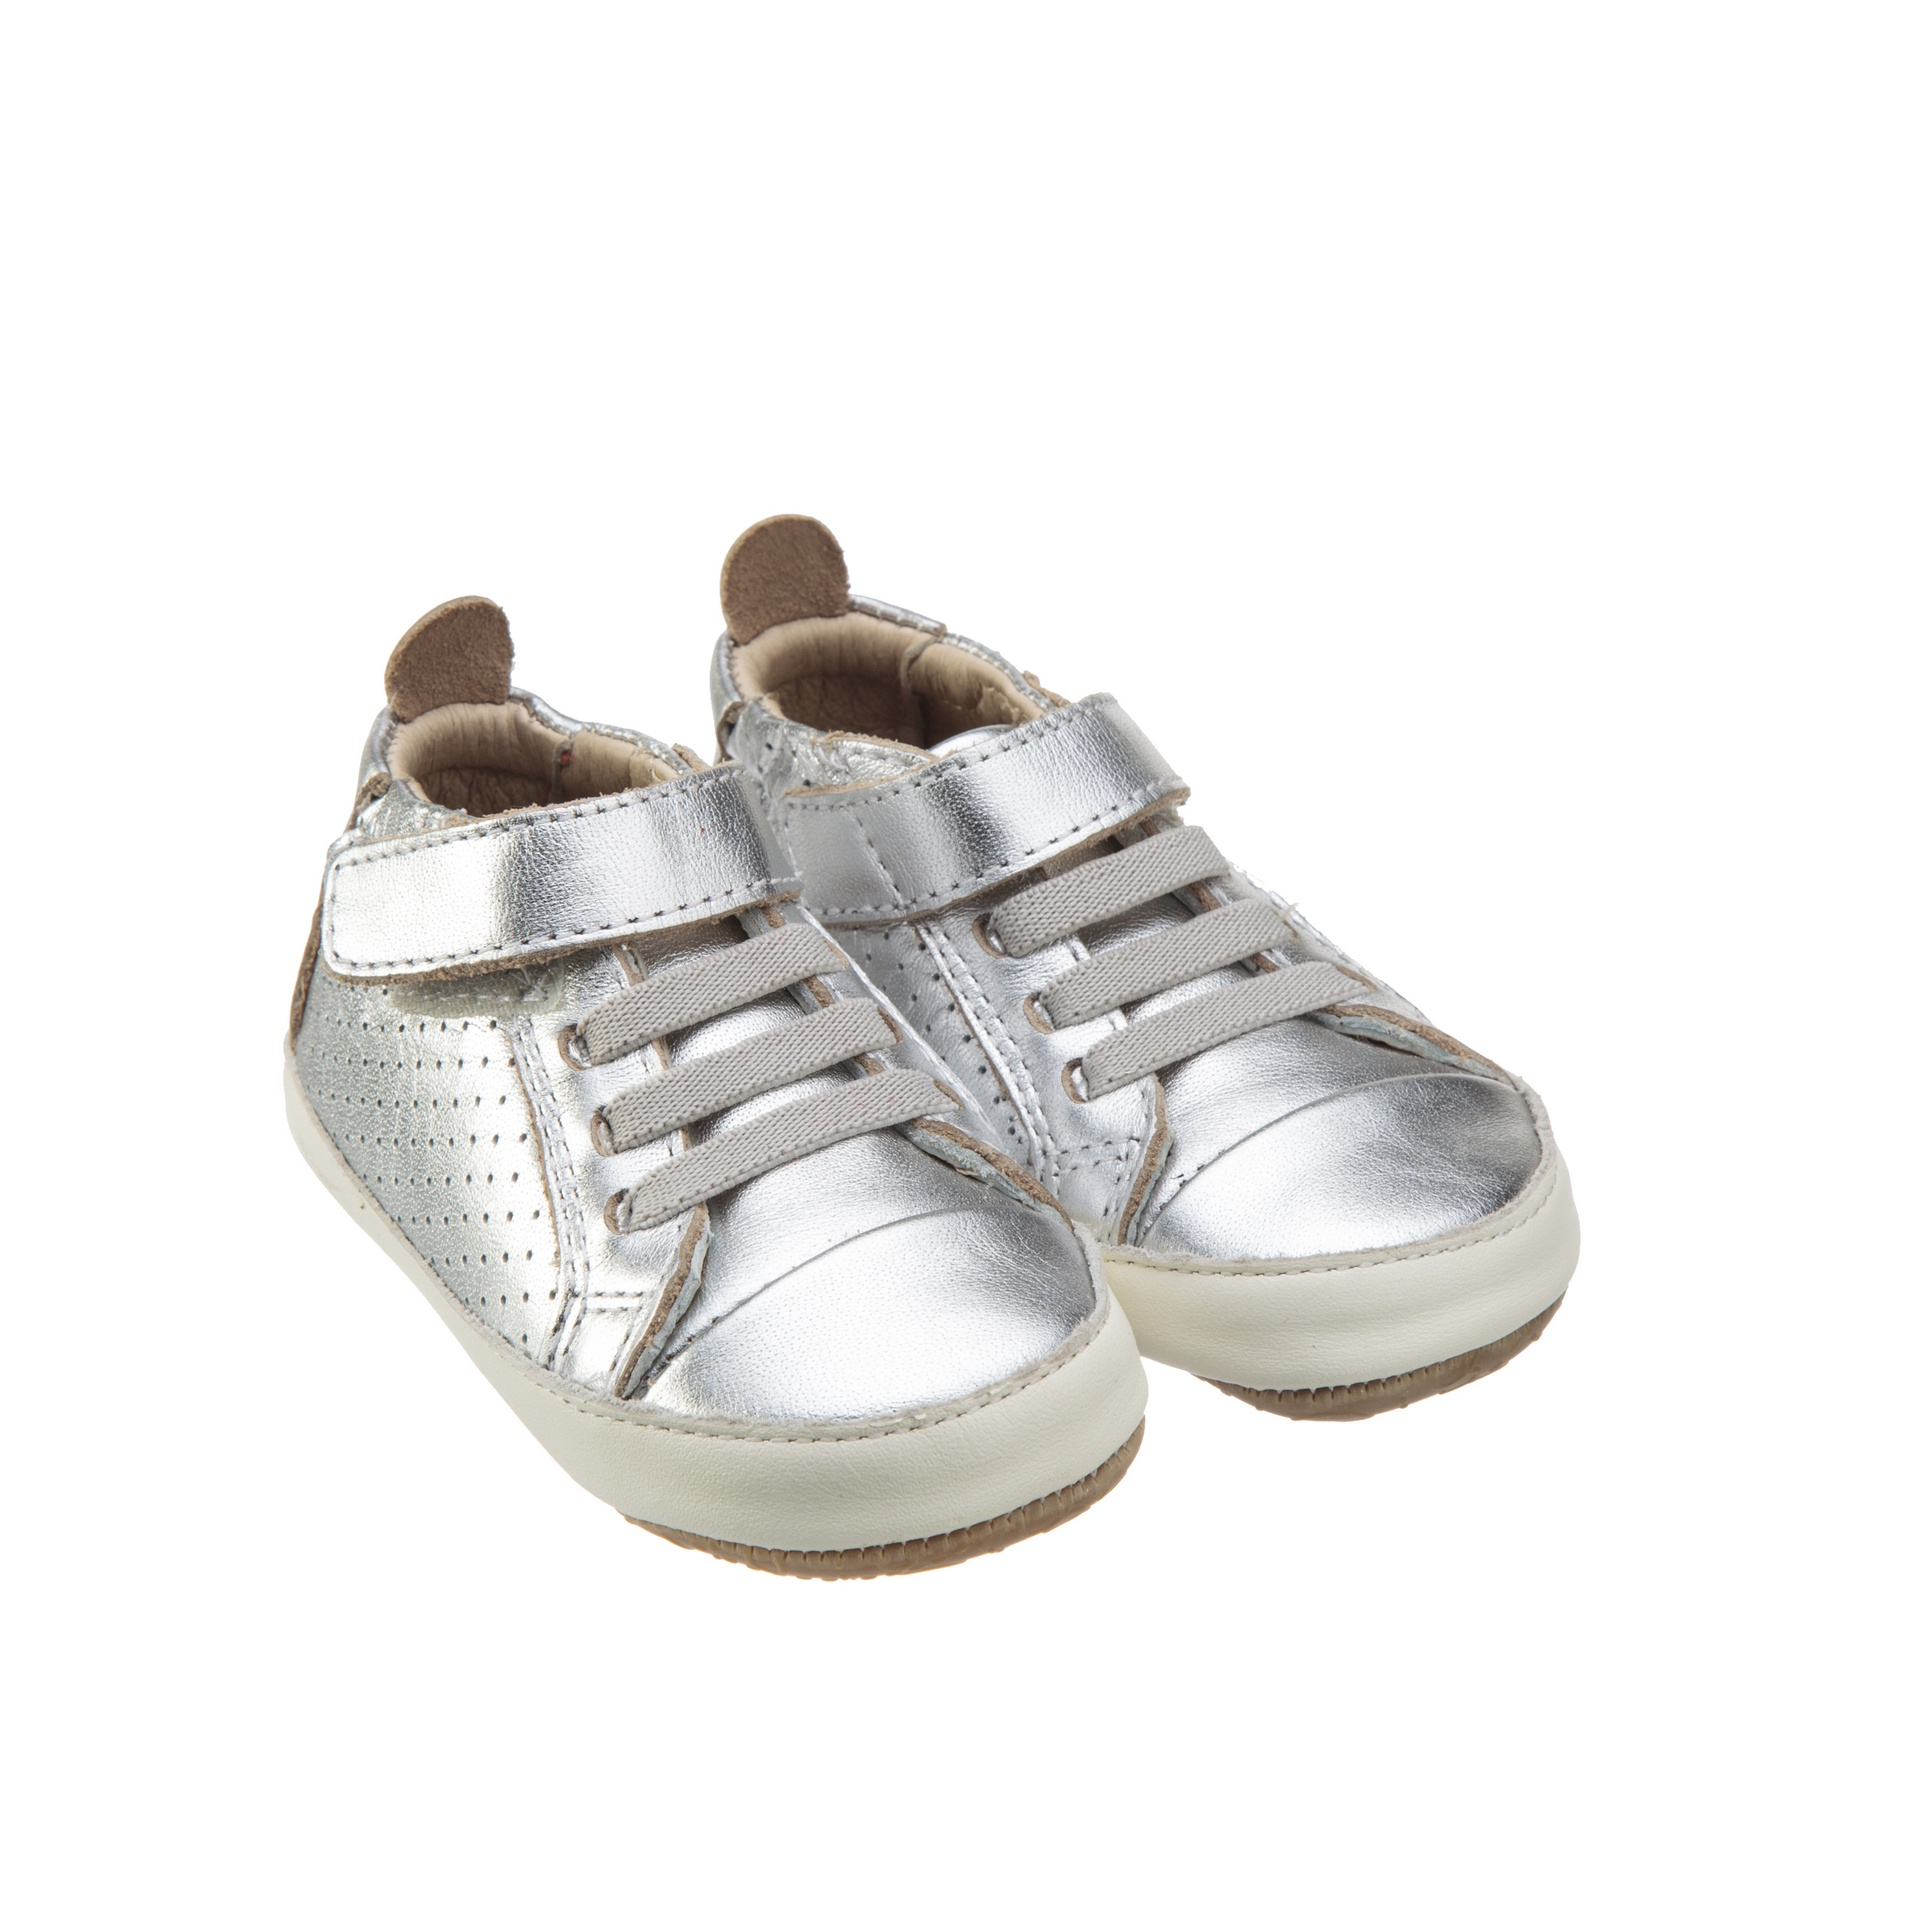 Old Soles Cheer Bambini Silver White Rubber Sole